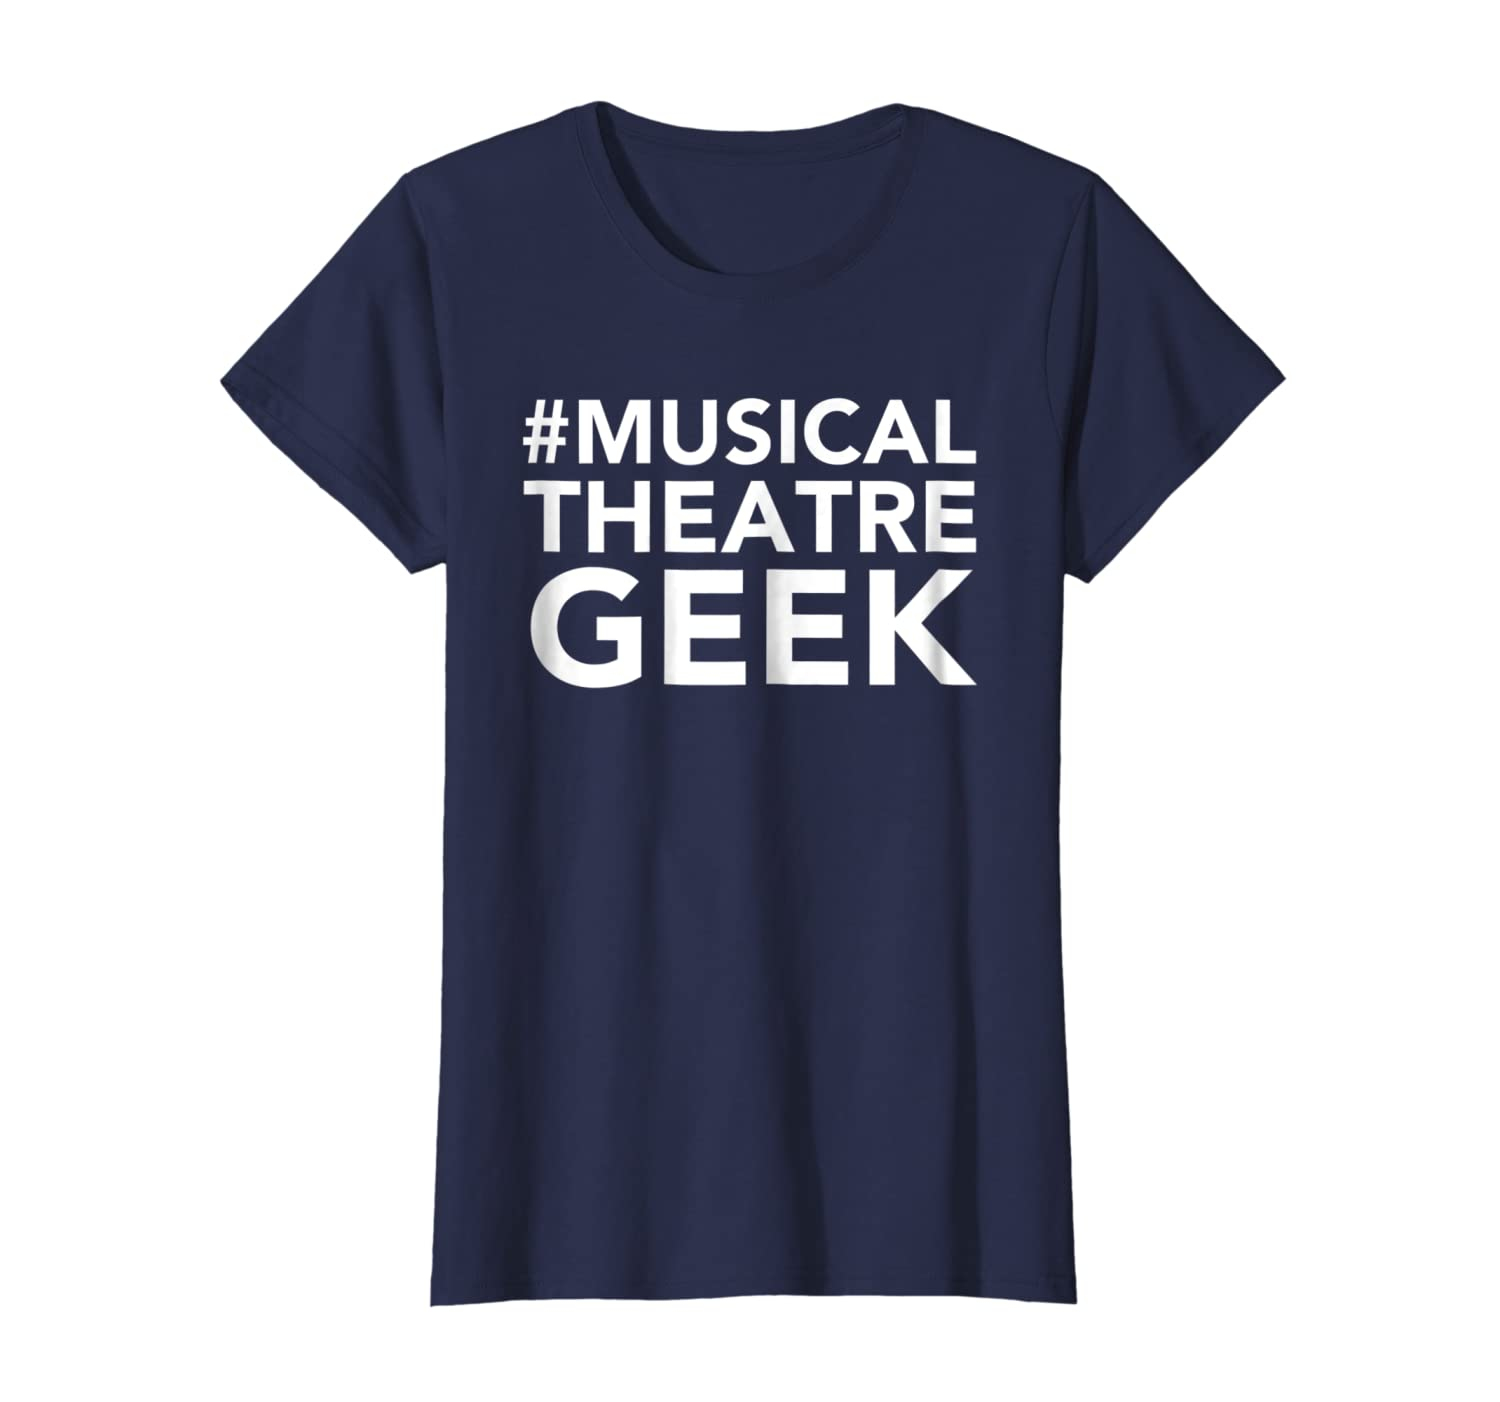 #Musical Theatre Geek Funny T-Shirt For A Theatre Nerd